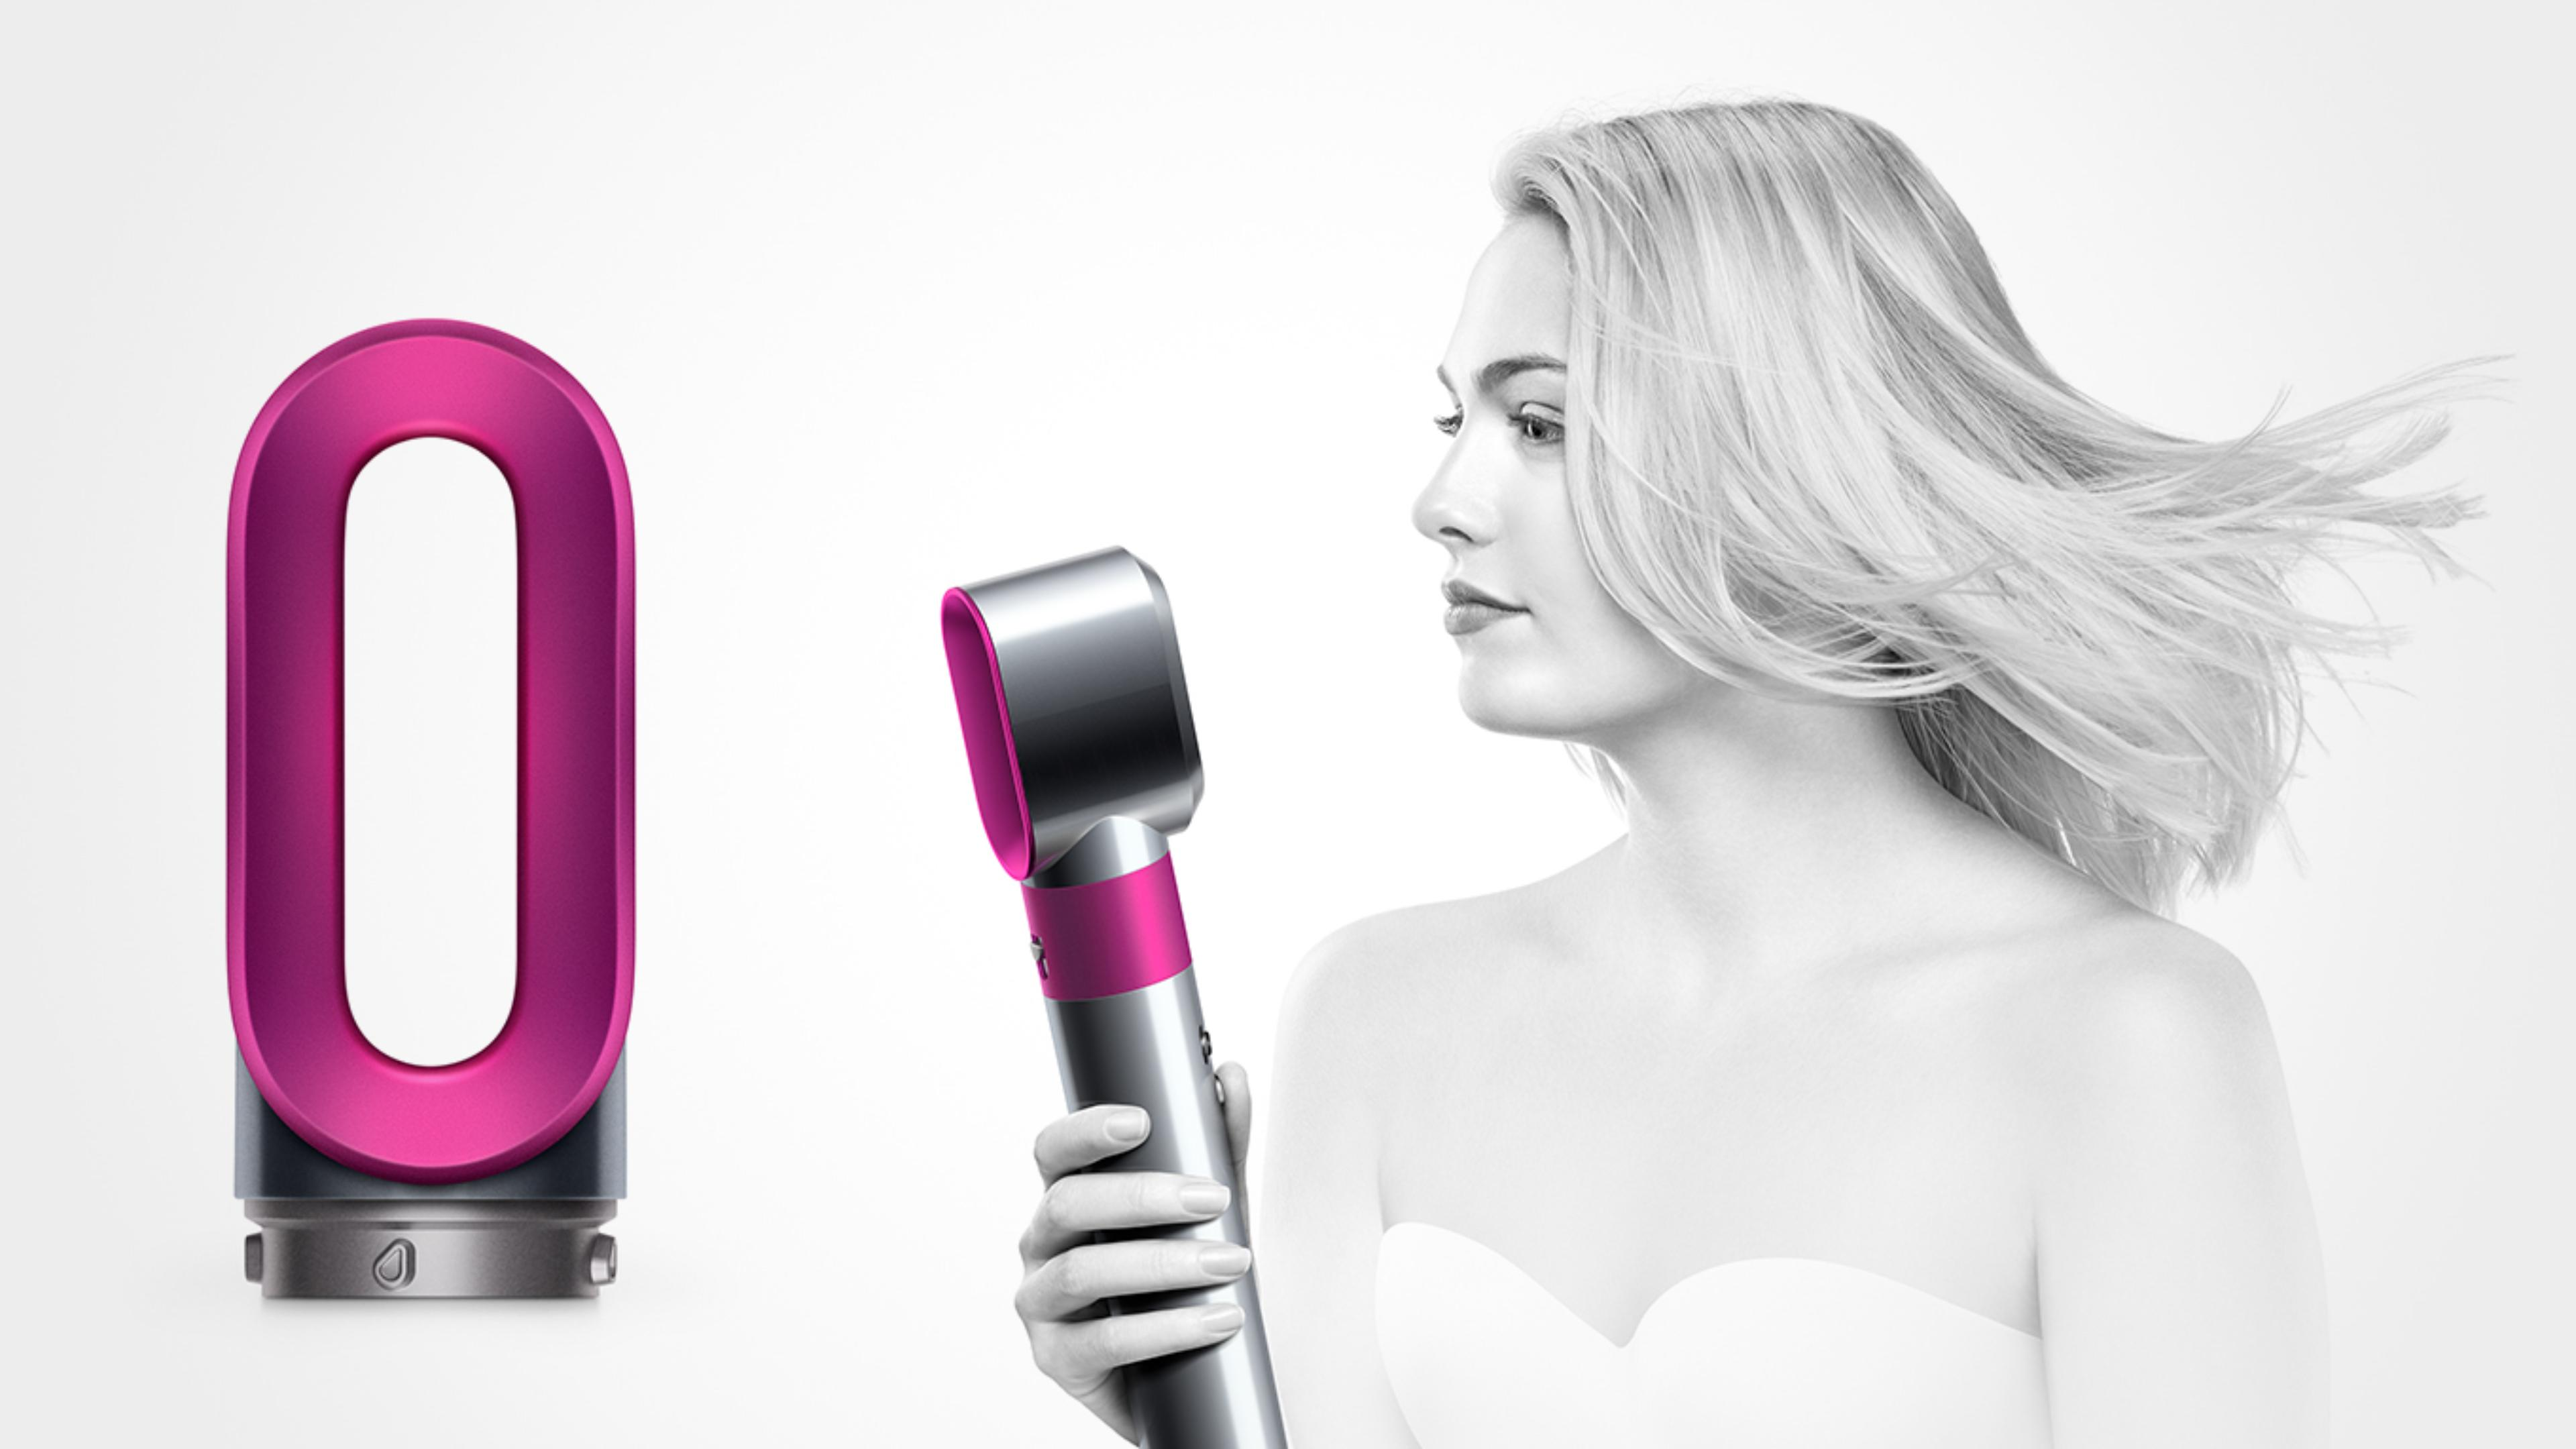 Pre-styling dryer with model using product